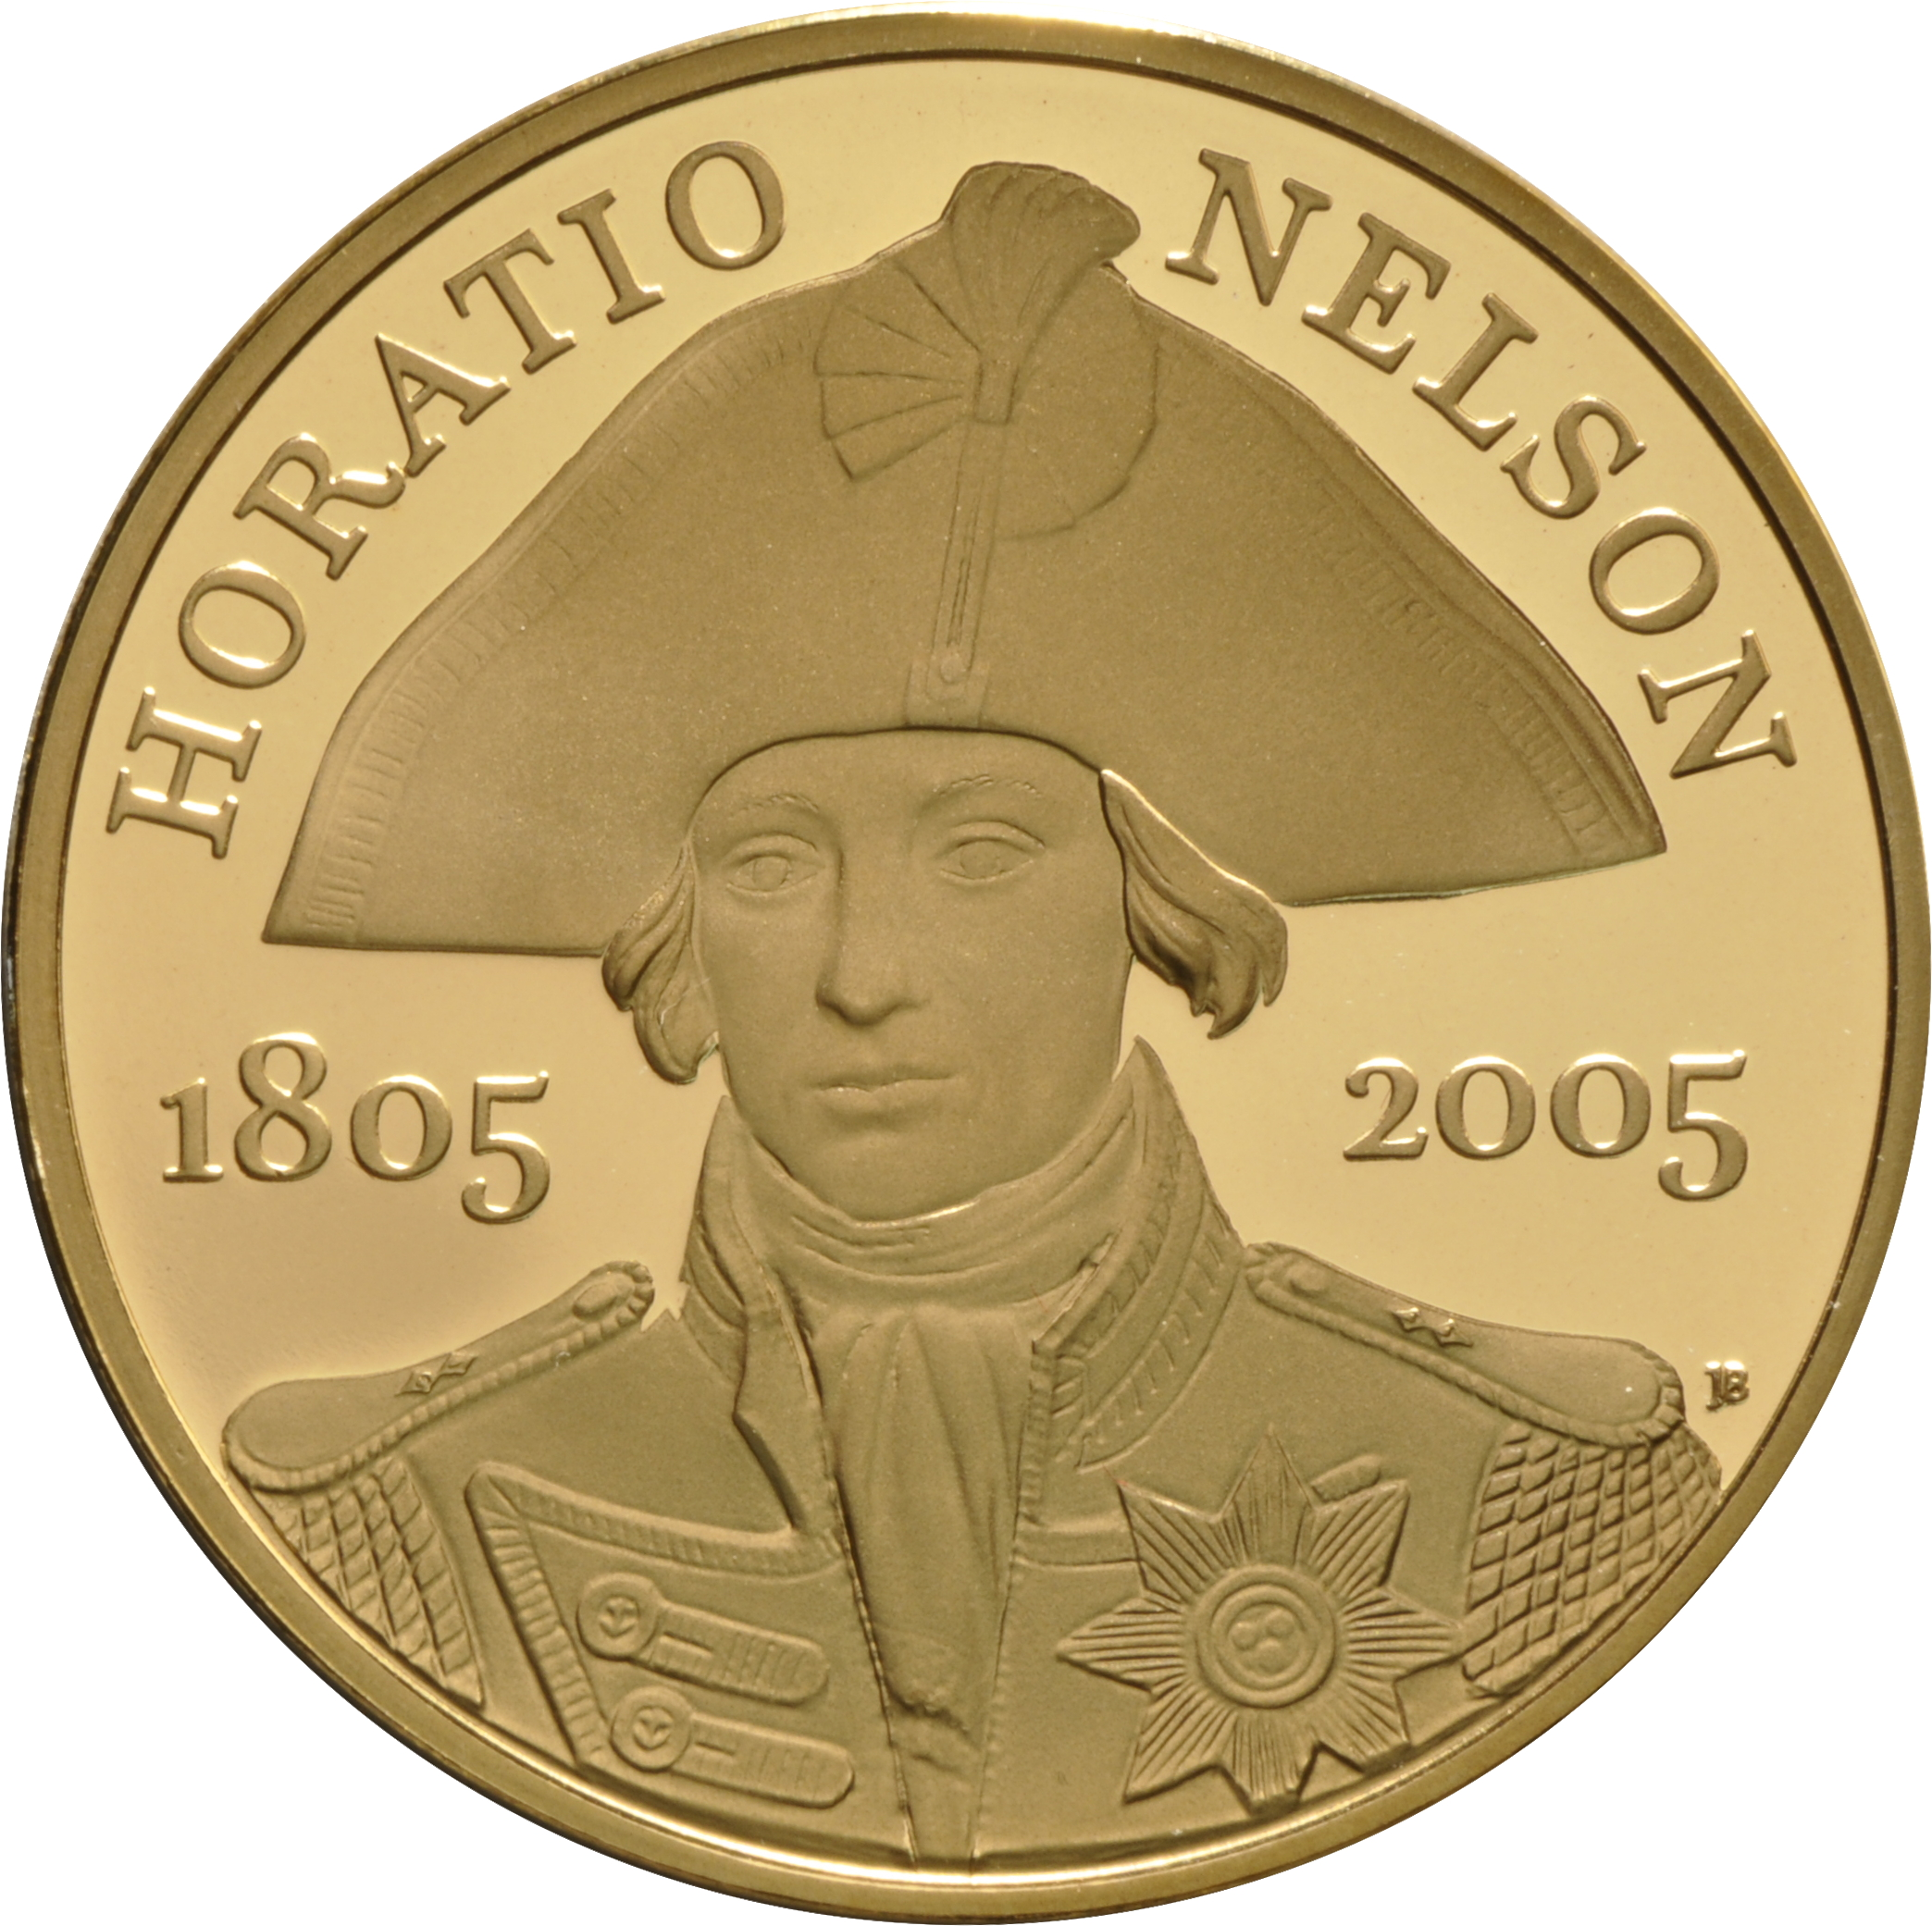 2005 Gold Five Pound Proof Coin Horatio Nelson 163 1 601